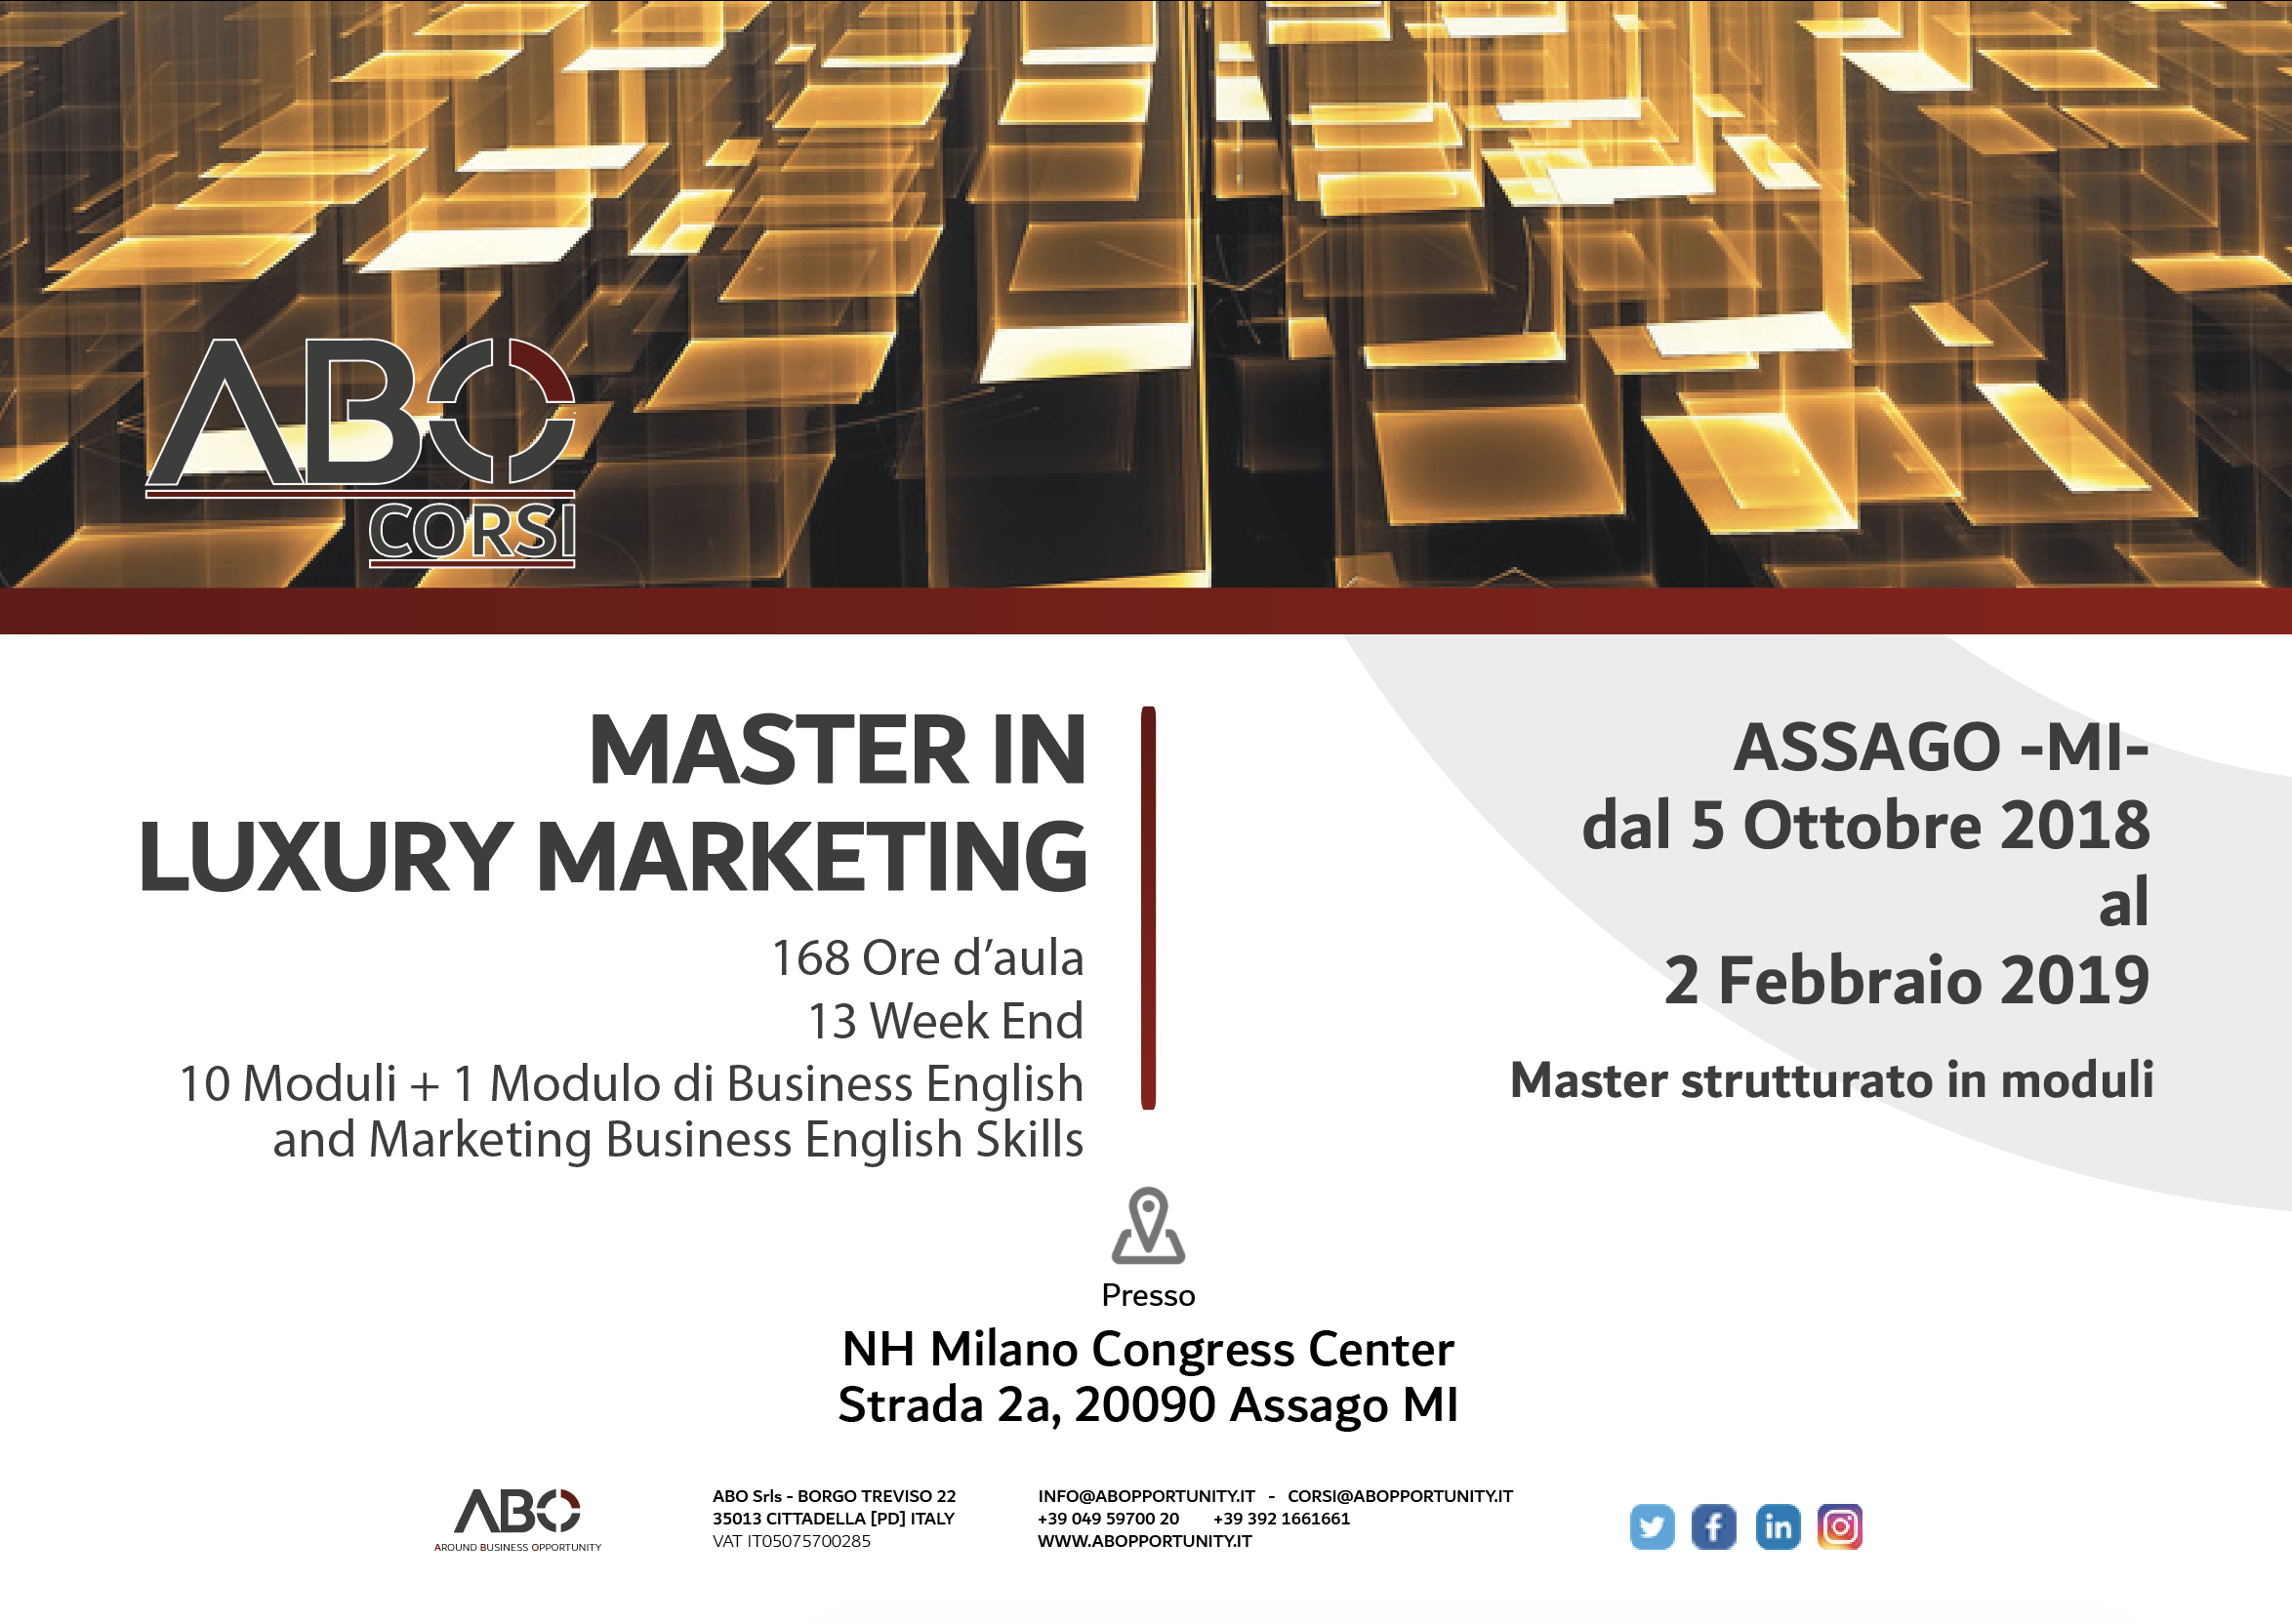 c4a97db6a373 MASTER IN LUXURY MARKETING 2018 2019 - ASSAGO - MILANO - ABOpportunity